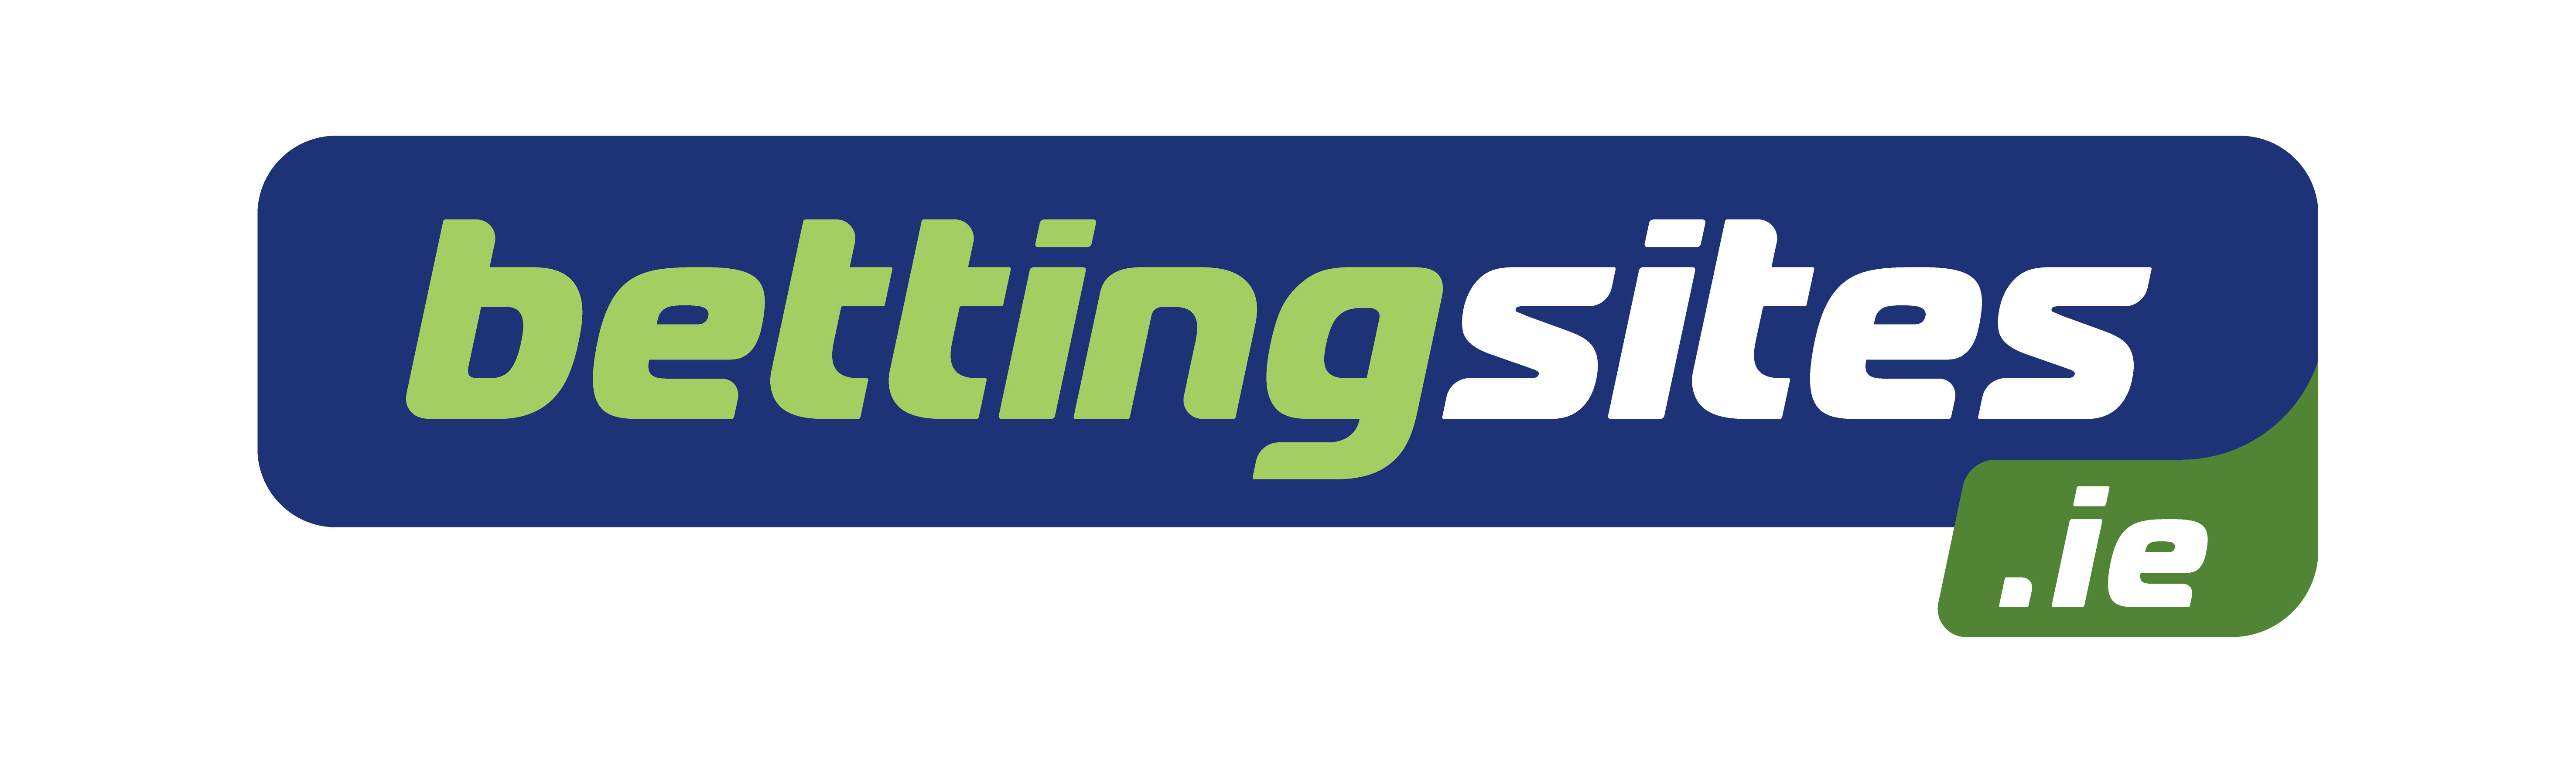 Bettingsites.ie